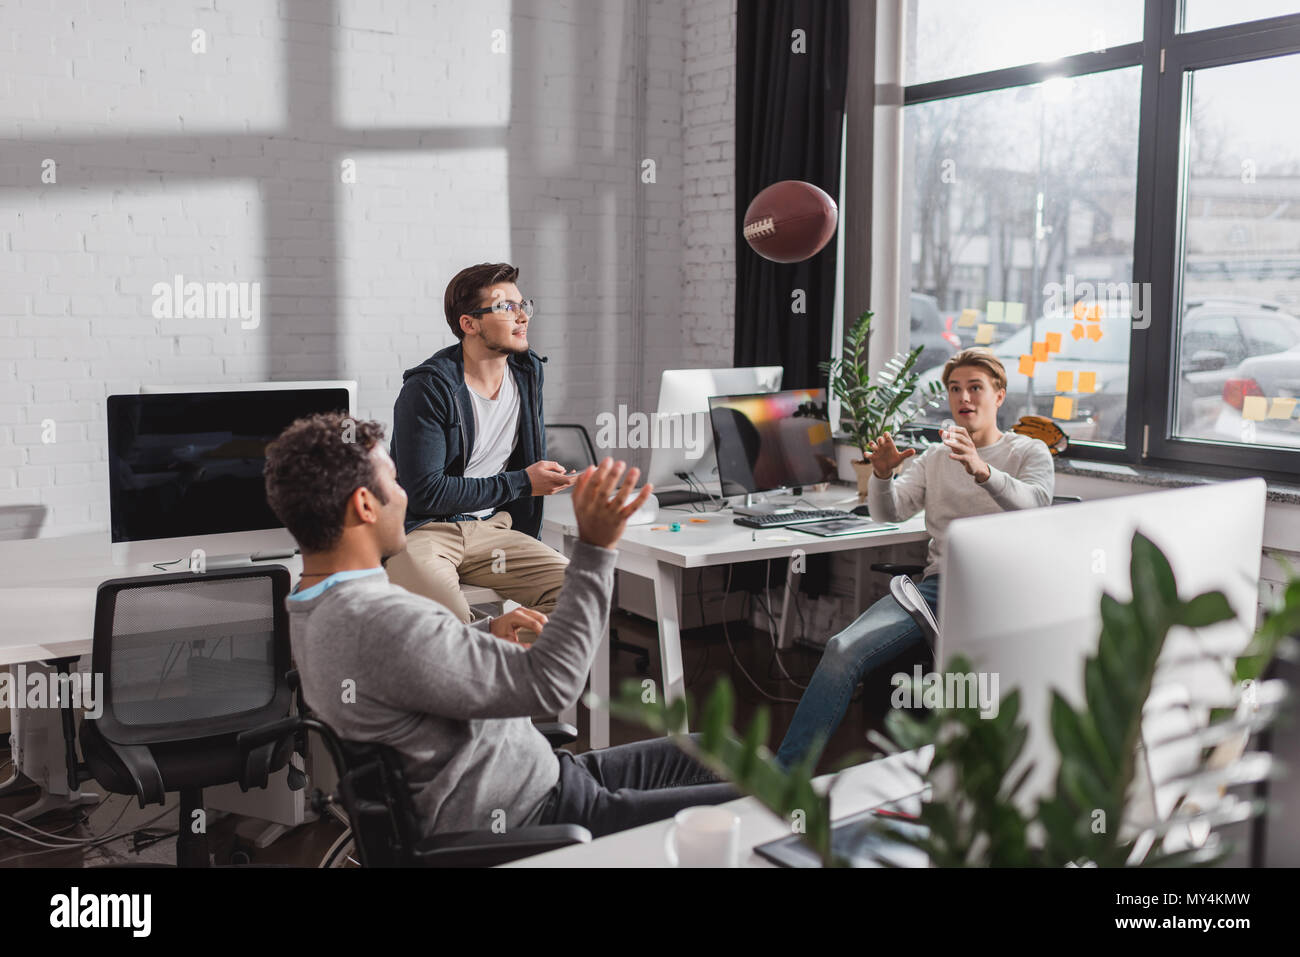 Men playing with ball in modern office - Stock Image